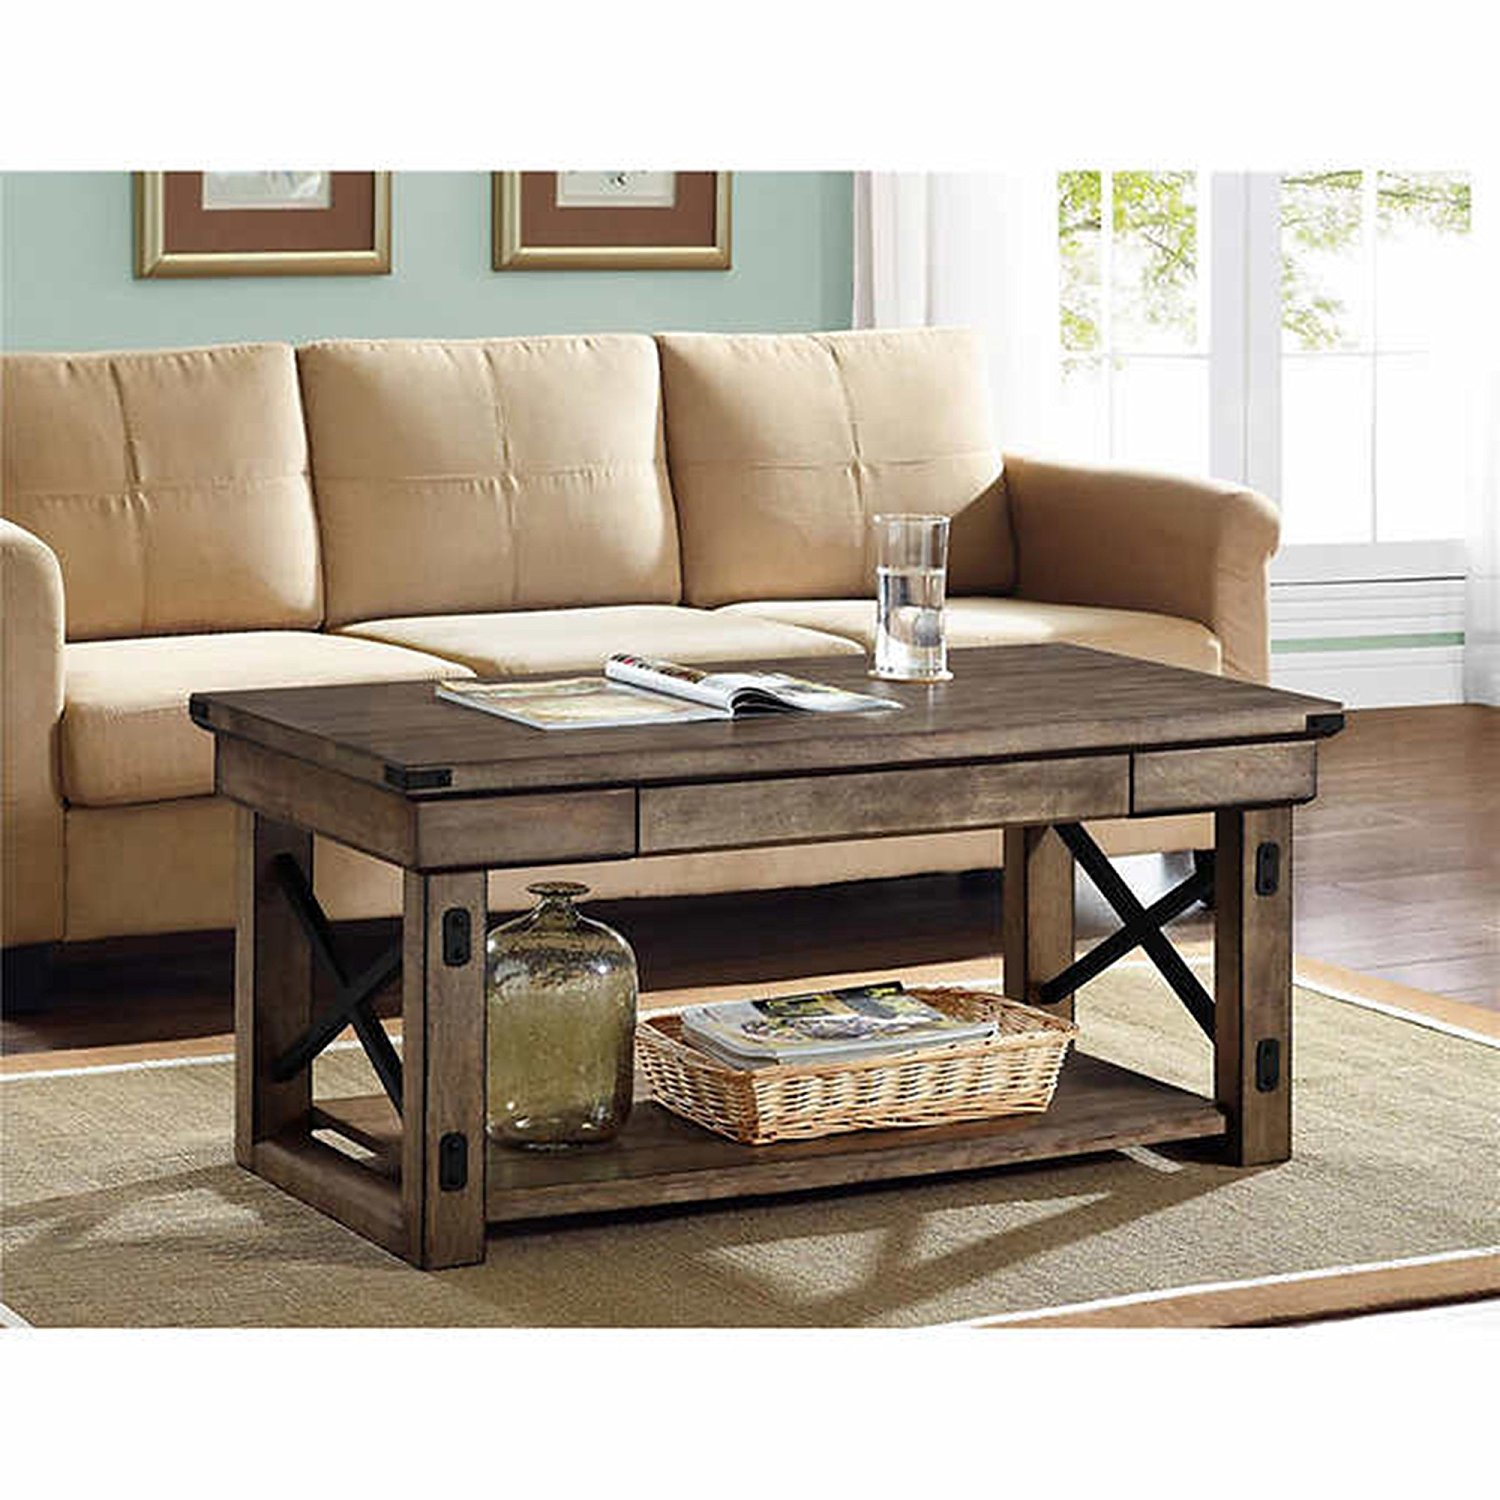 coffee table weathered beachwood round storage tables grey wood square for rustic accent shabby chic larg reclaimed and metal distressed trunk with wheels end game less leather